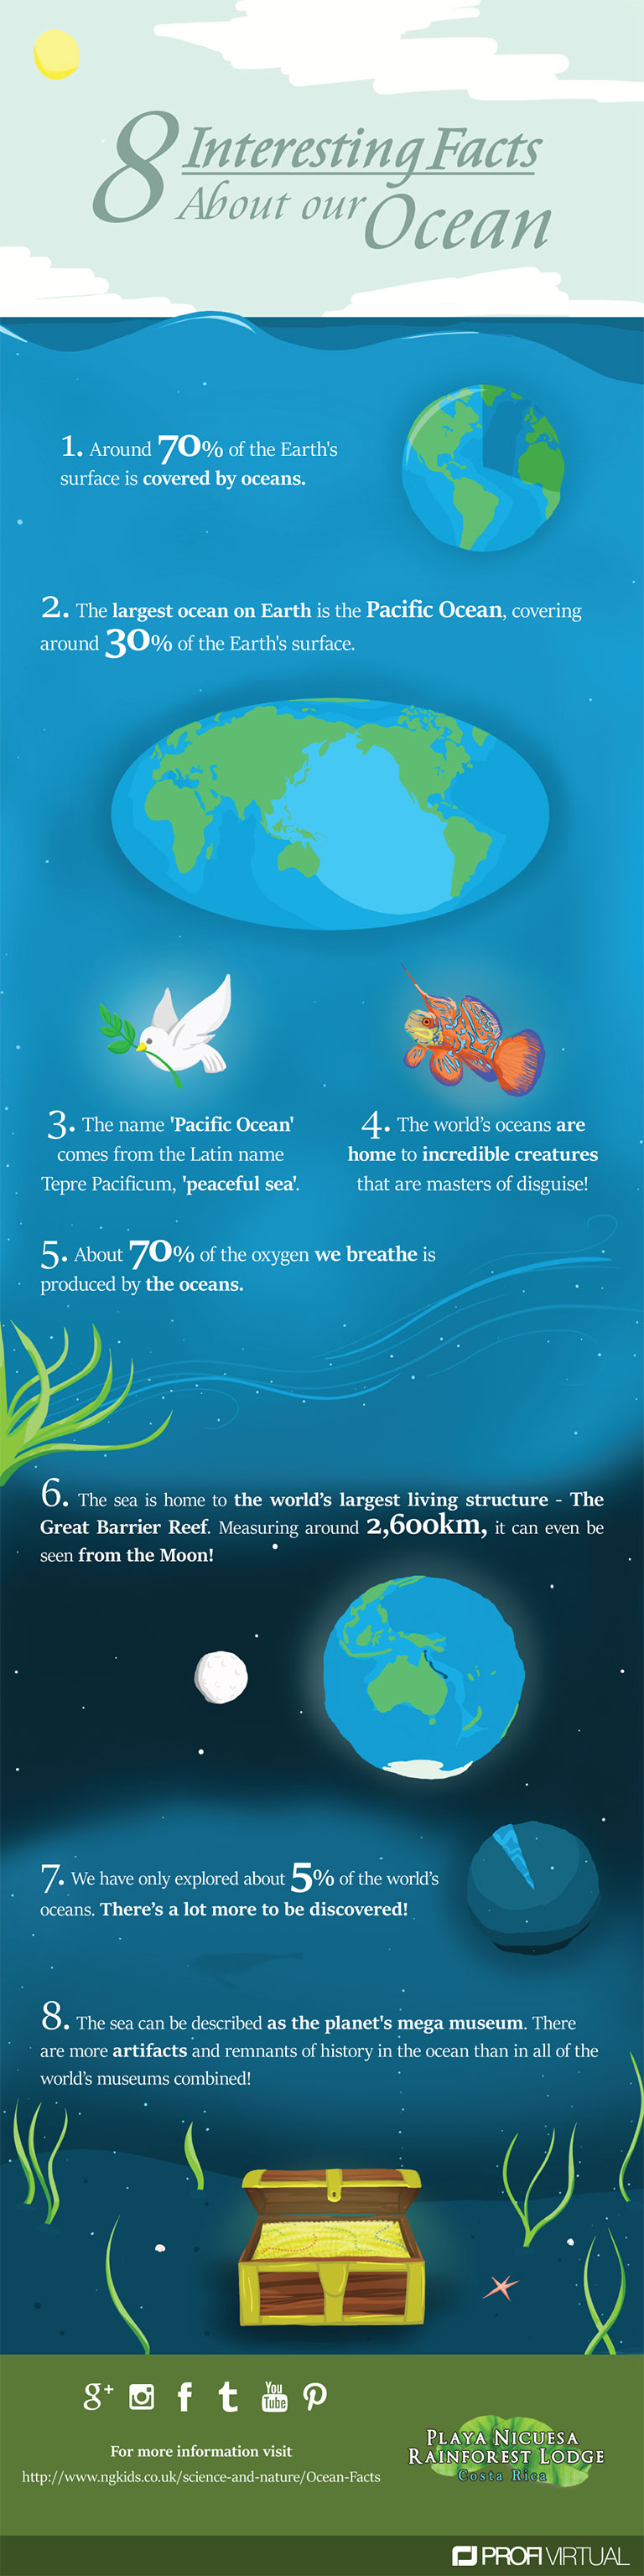 8 Interesting facts about our ocean